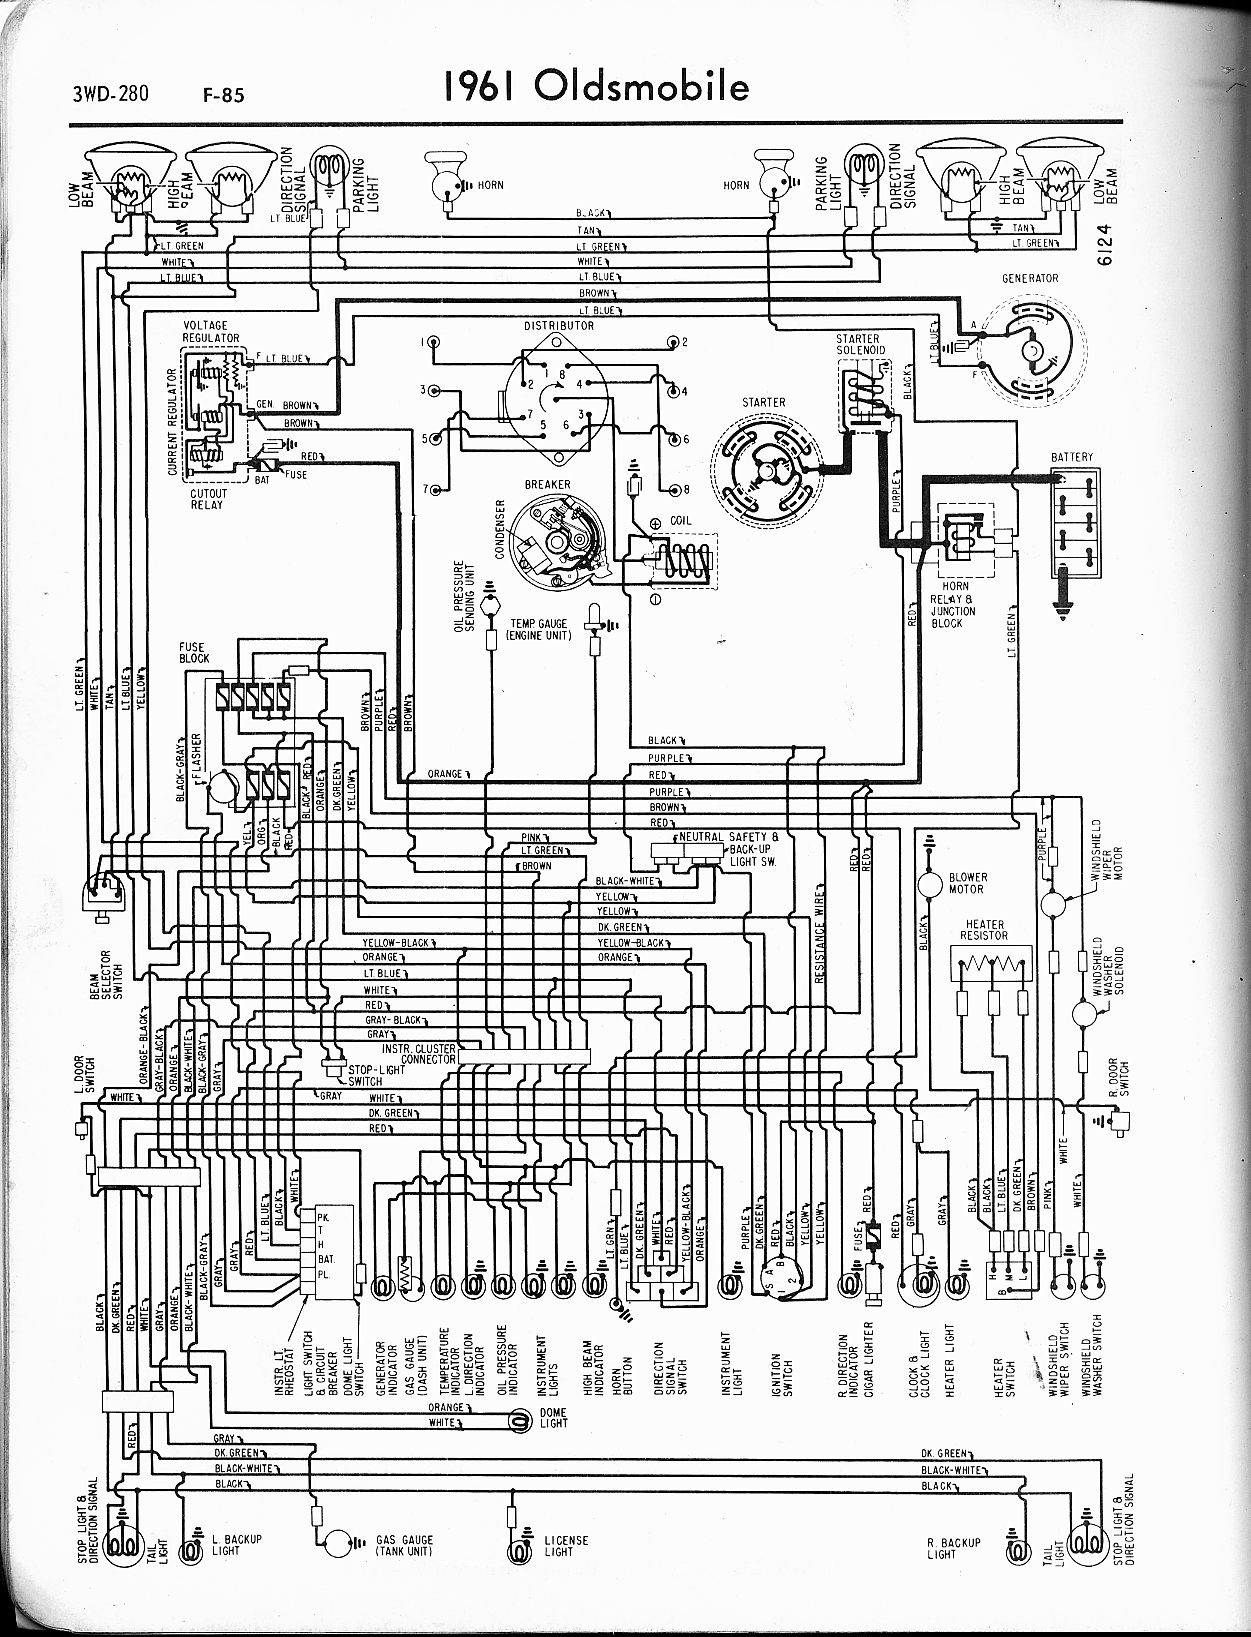 2005 gm headlight switch wiring diagram 1954 gm headlight switch wiring diagram